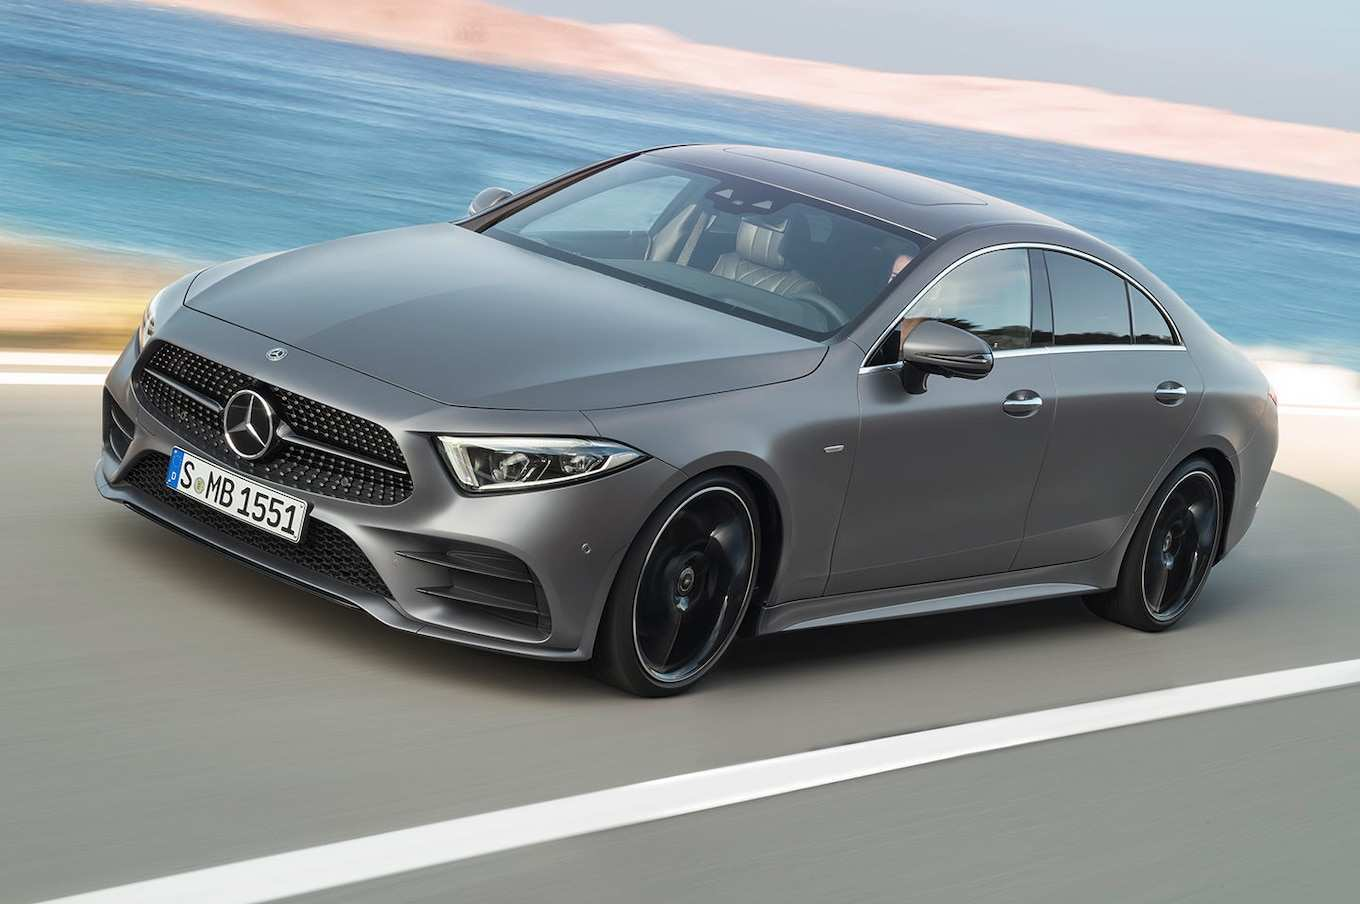 93 All New Mercedes 2019 Cls Images with Mercedes 2019 Cls